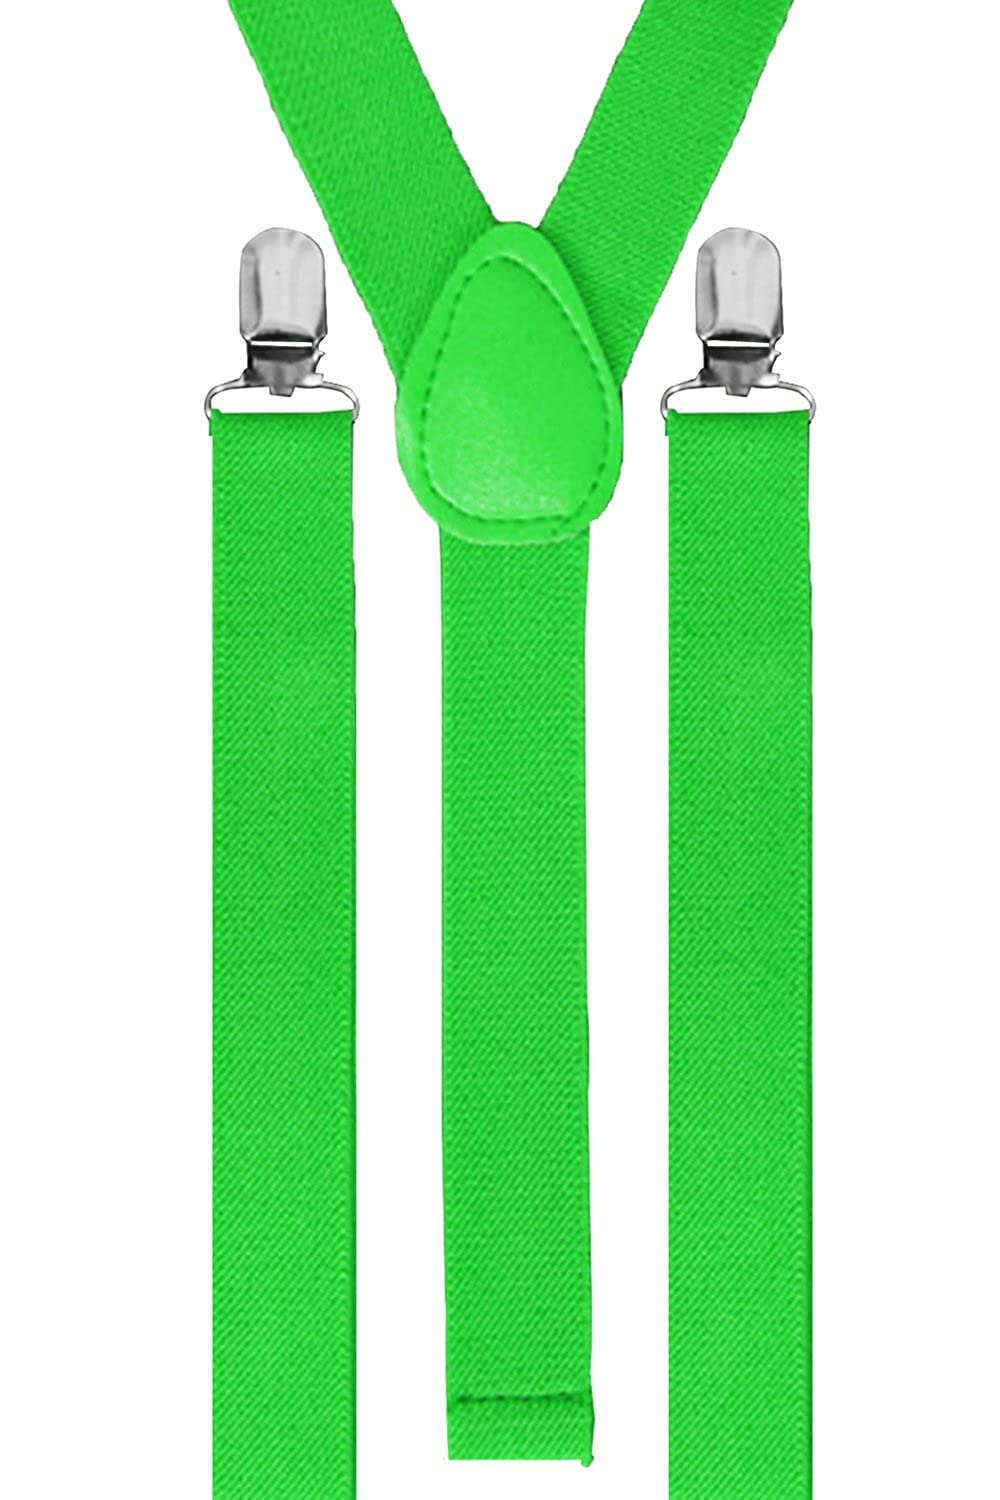 Unisex Adjustable Braces Adults Slim Suspenders Neon Clip On Trouser Fancy Dress